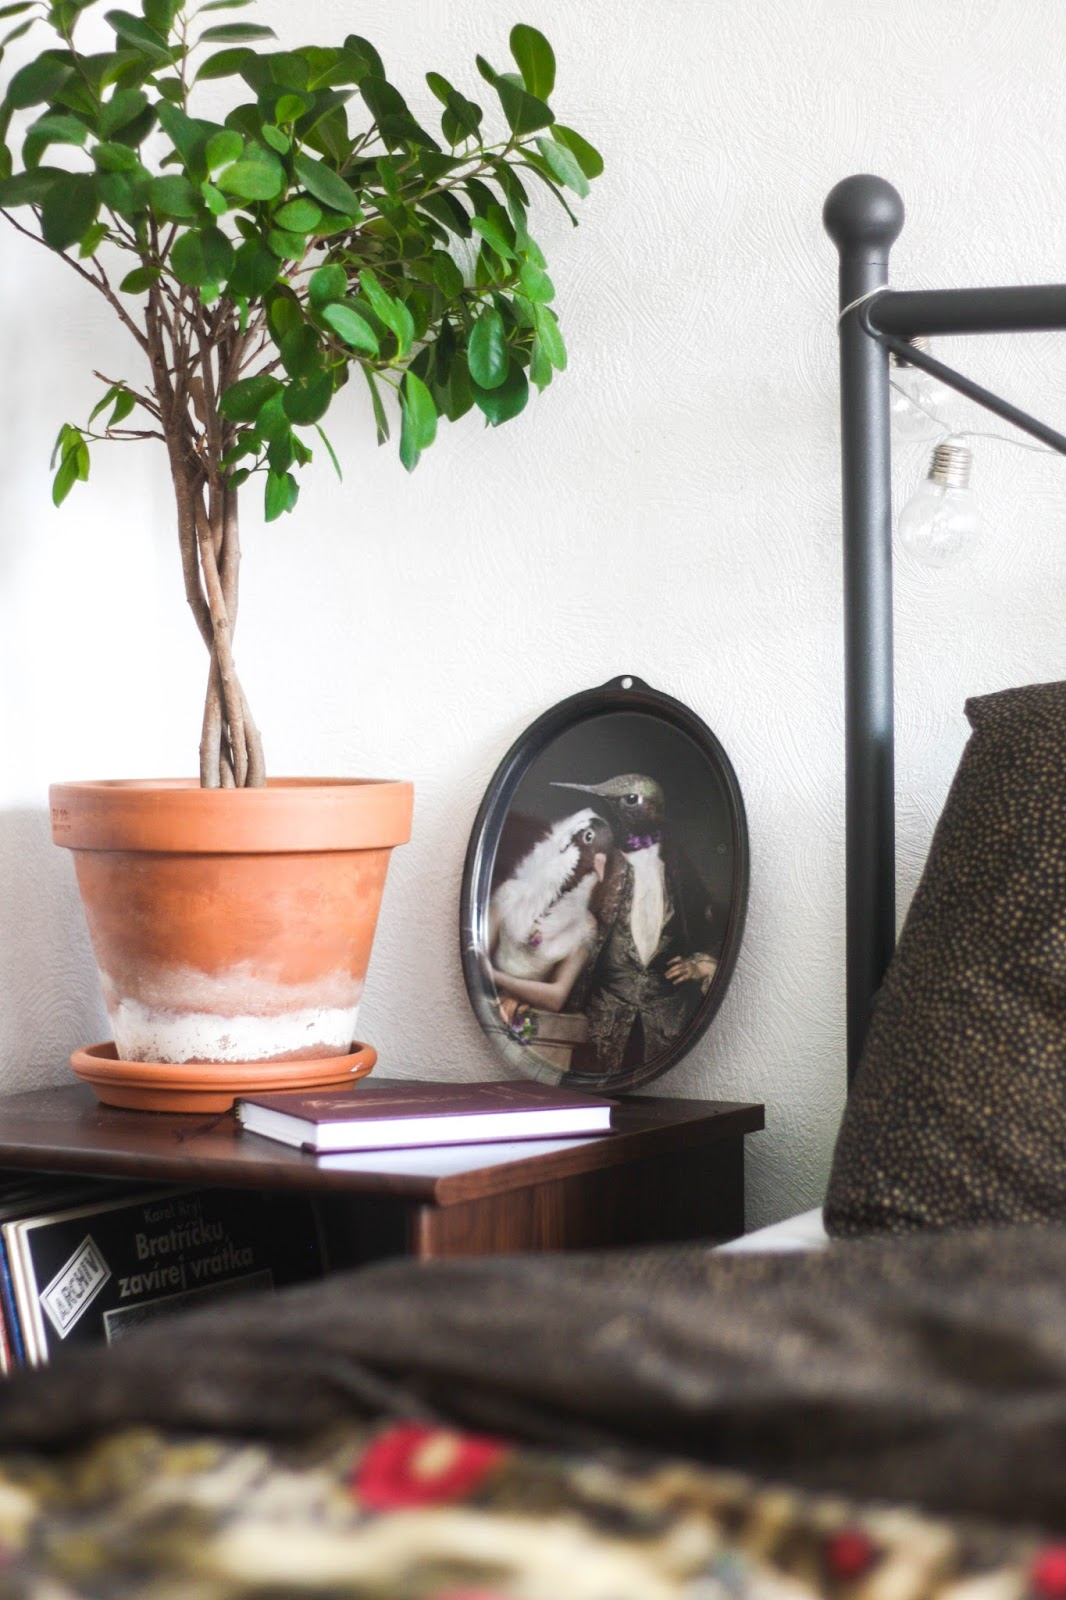 Inspired by Instagram: Beautiful home decor with mid-century flare